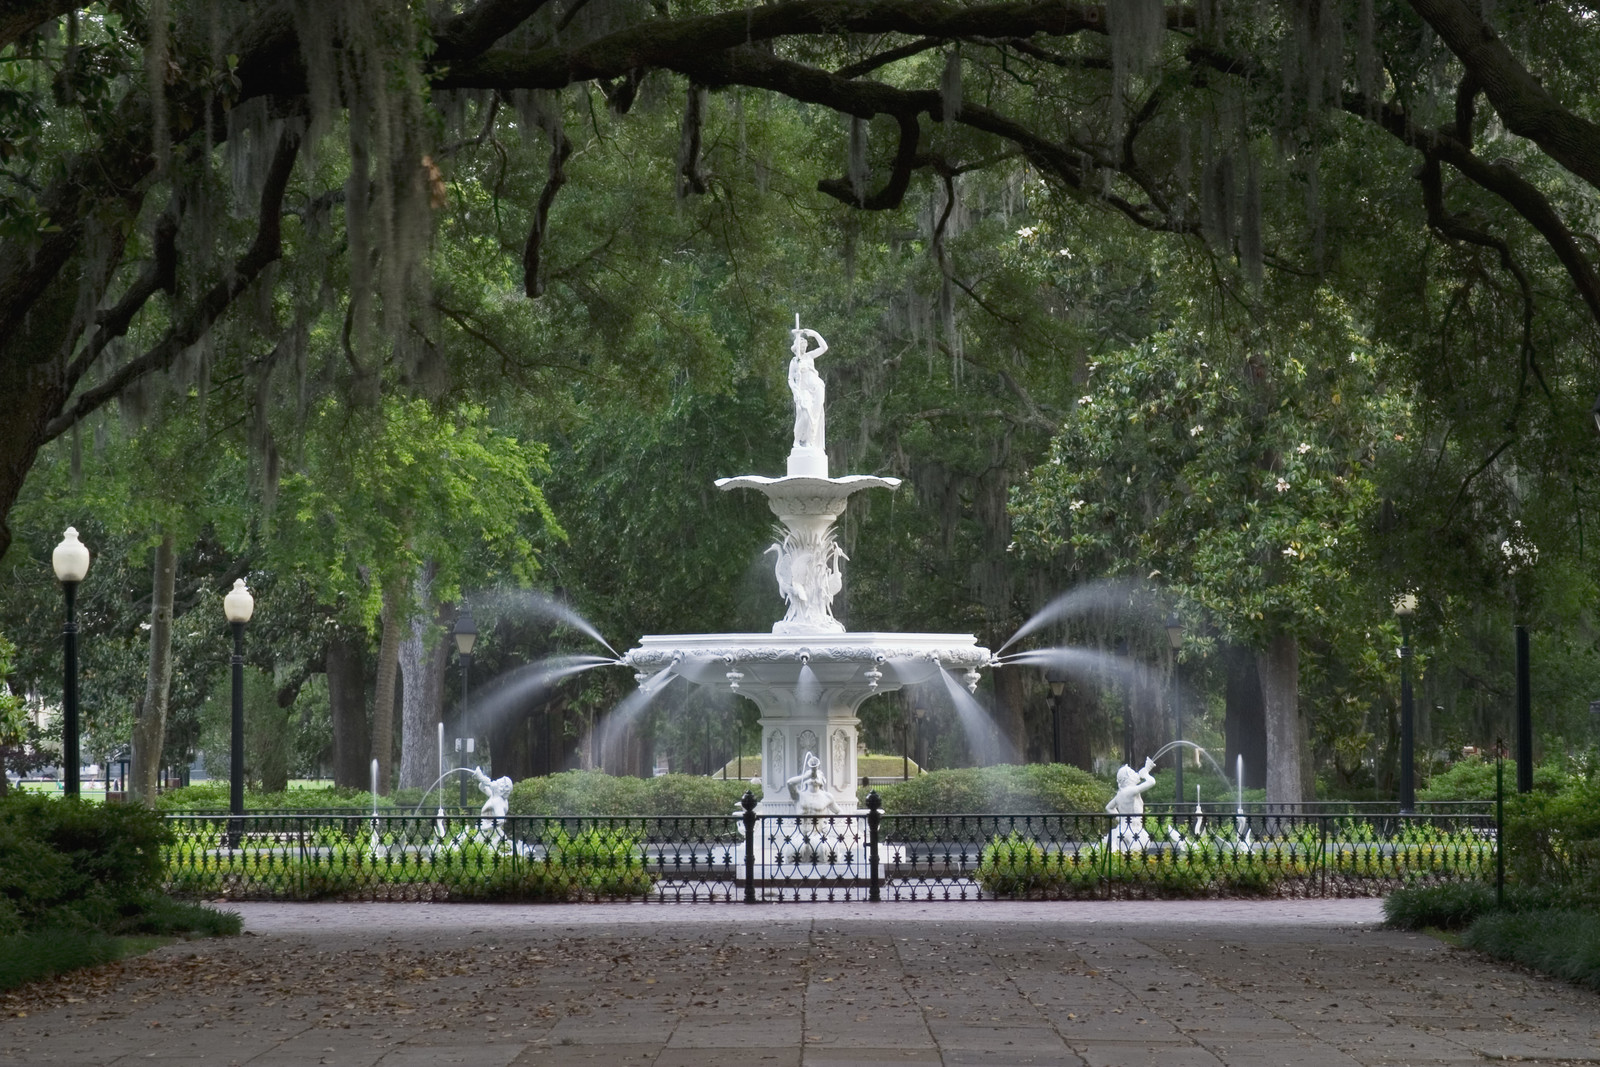 Forsyth park fountain in Savannah Georgia surrounded by green trees